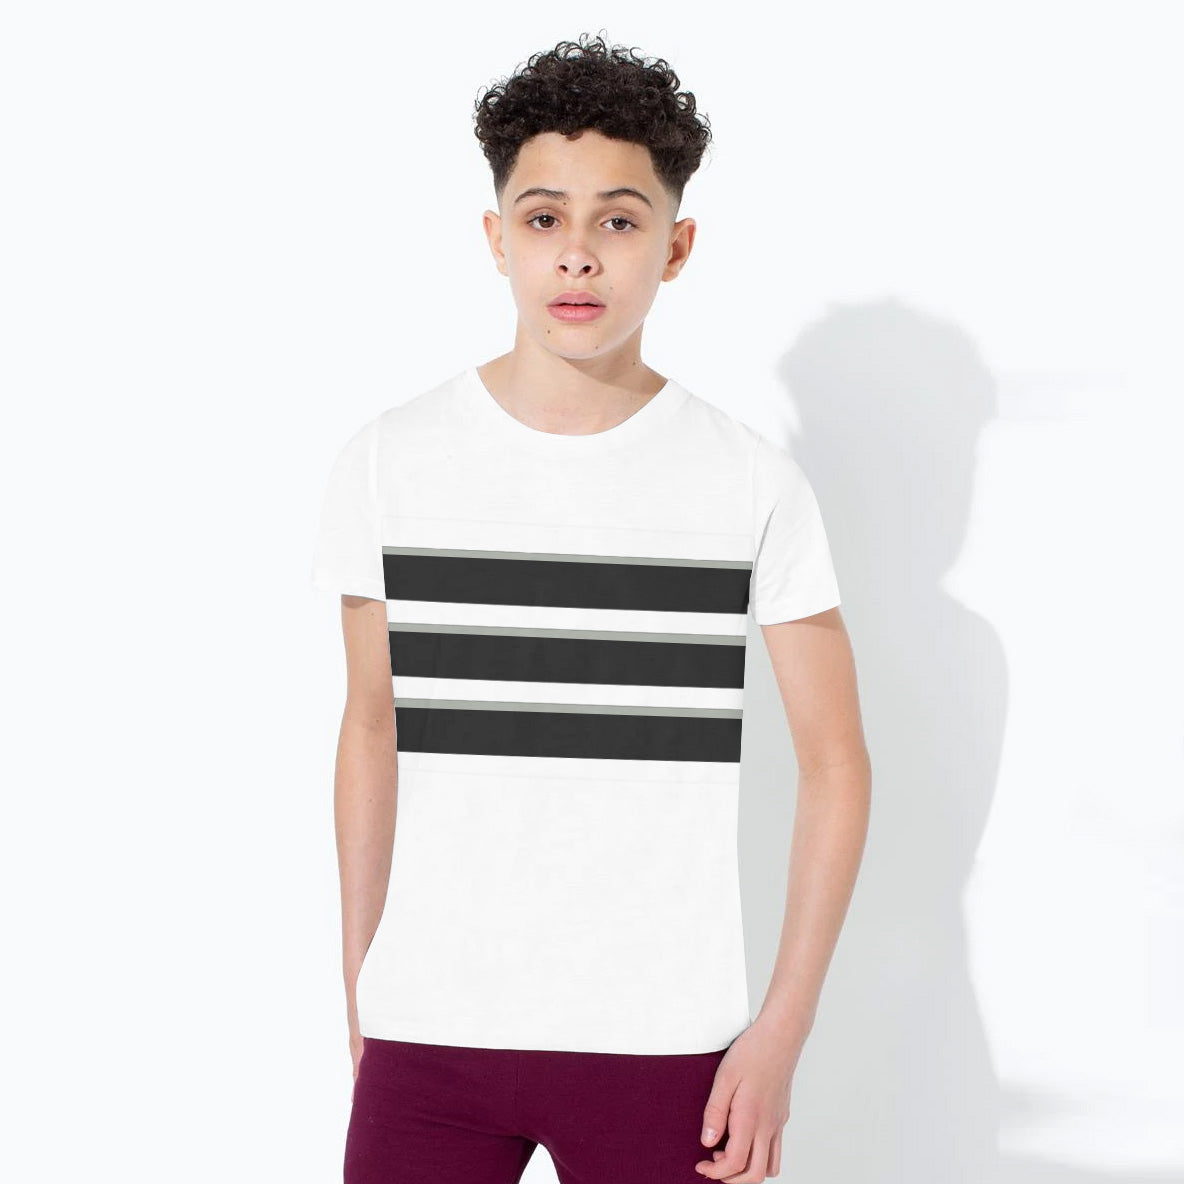 NK Crew Neck Single Jersey Tee Shirt For Kids-White & Black Panels-BE12417